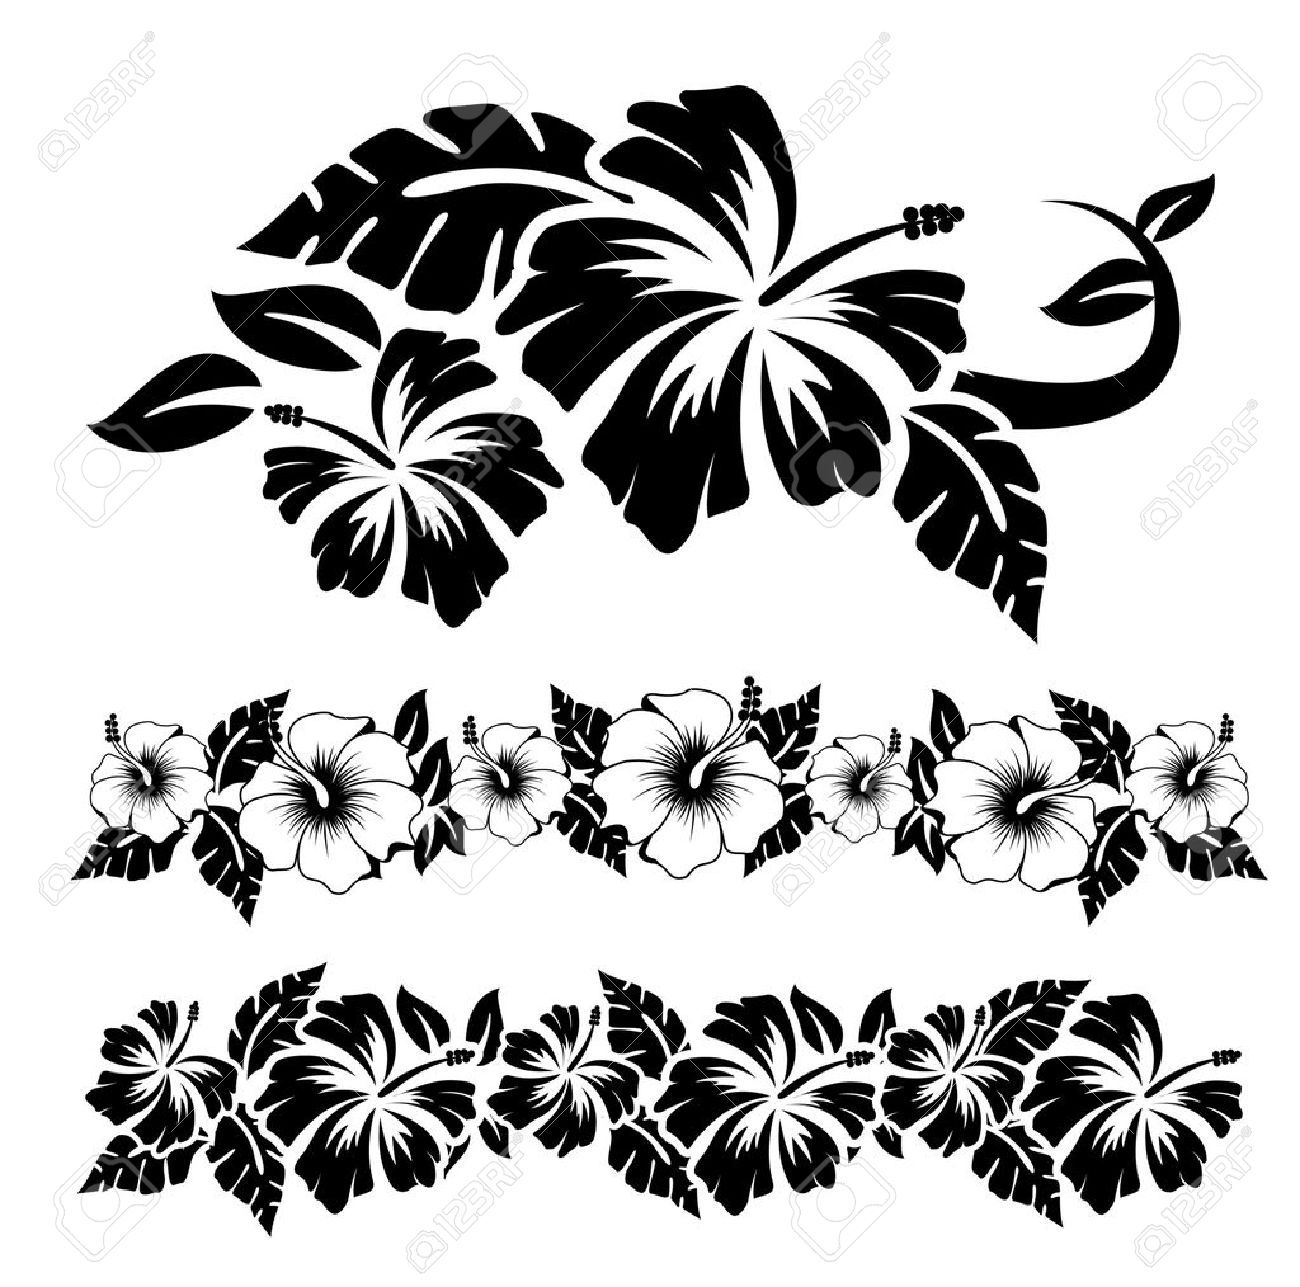 Tropical flower stencils gallery tiki partys pinterest tropical flower stencils gallery izmirmasajfo